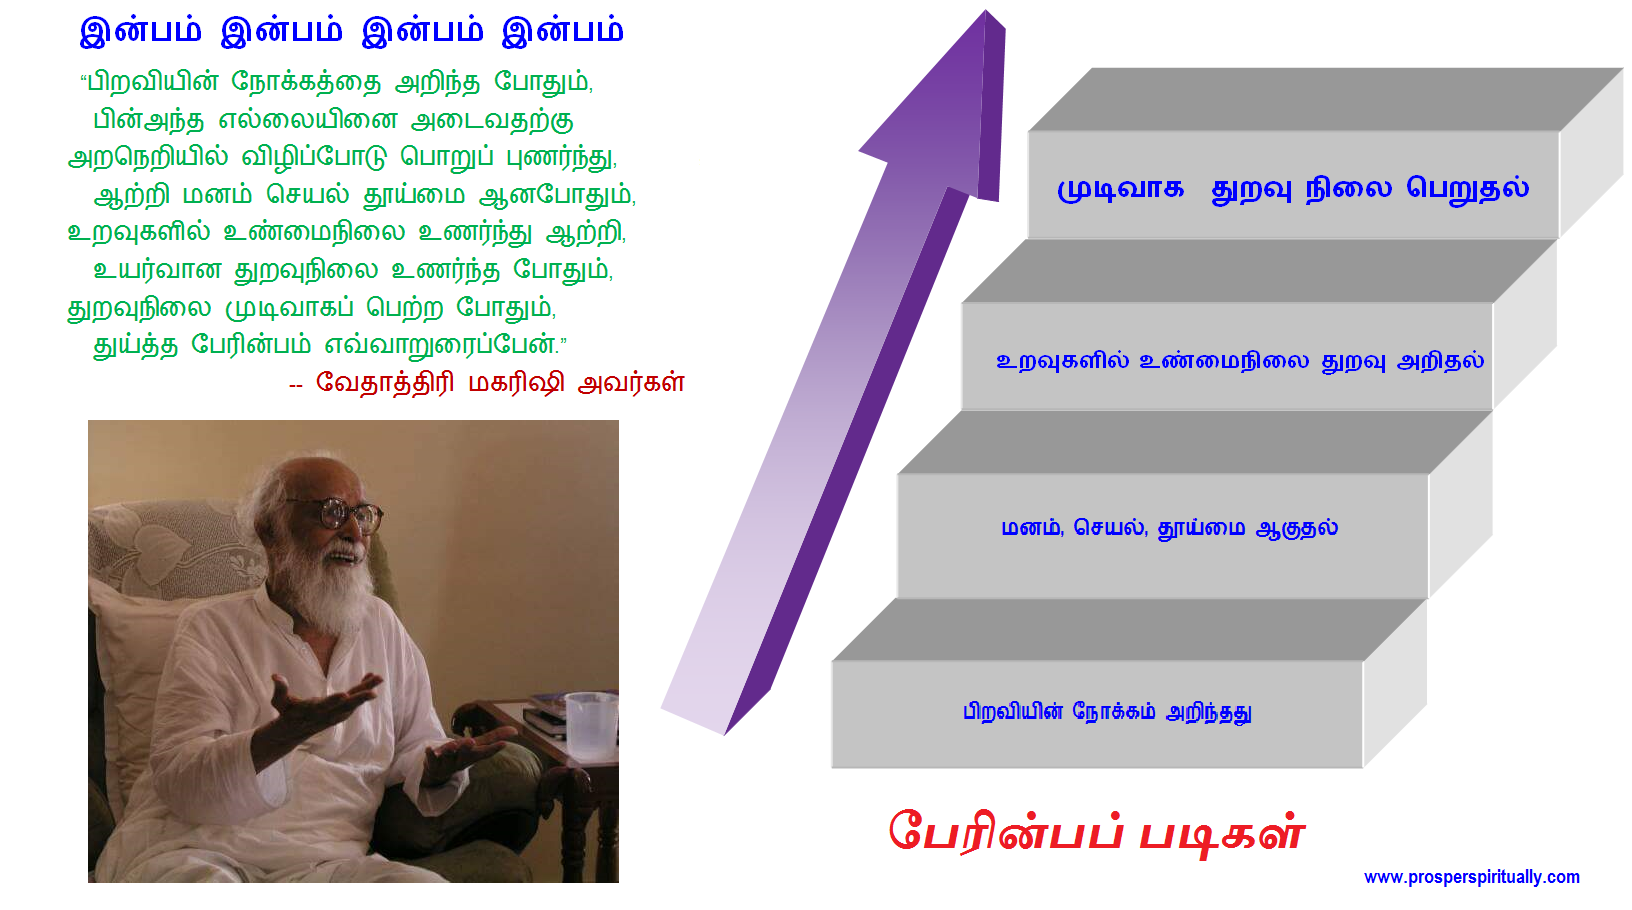 Perinbappadigal_Spiritual_ladder_reduced size